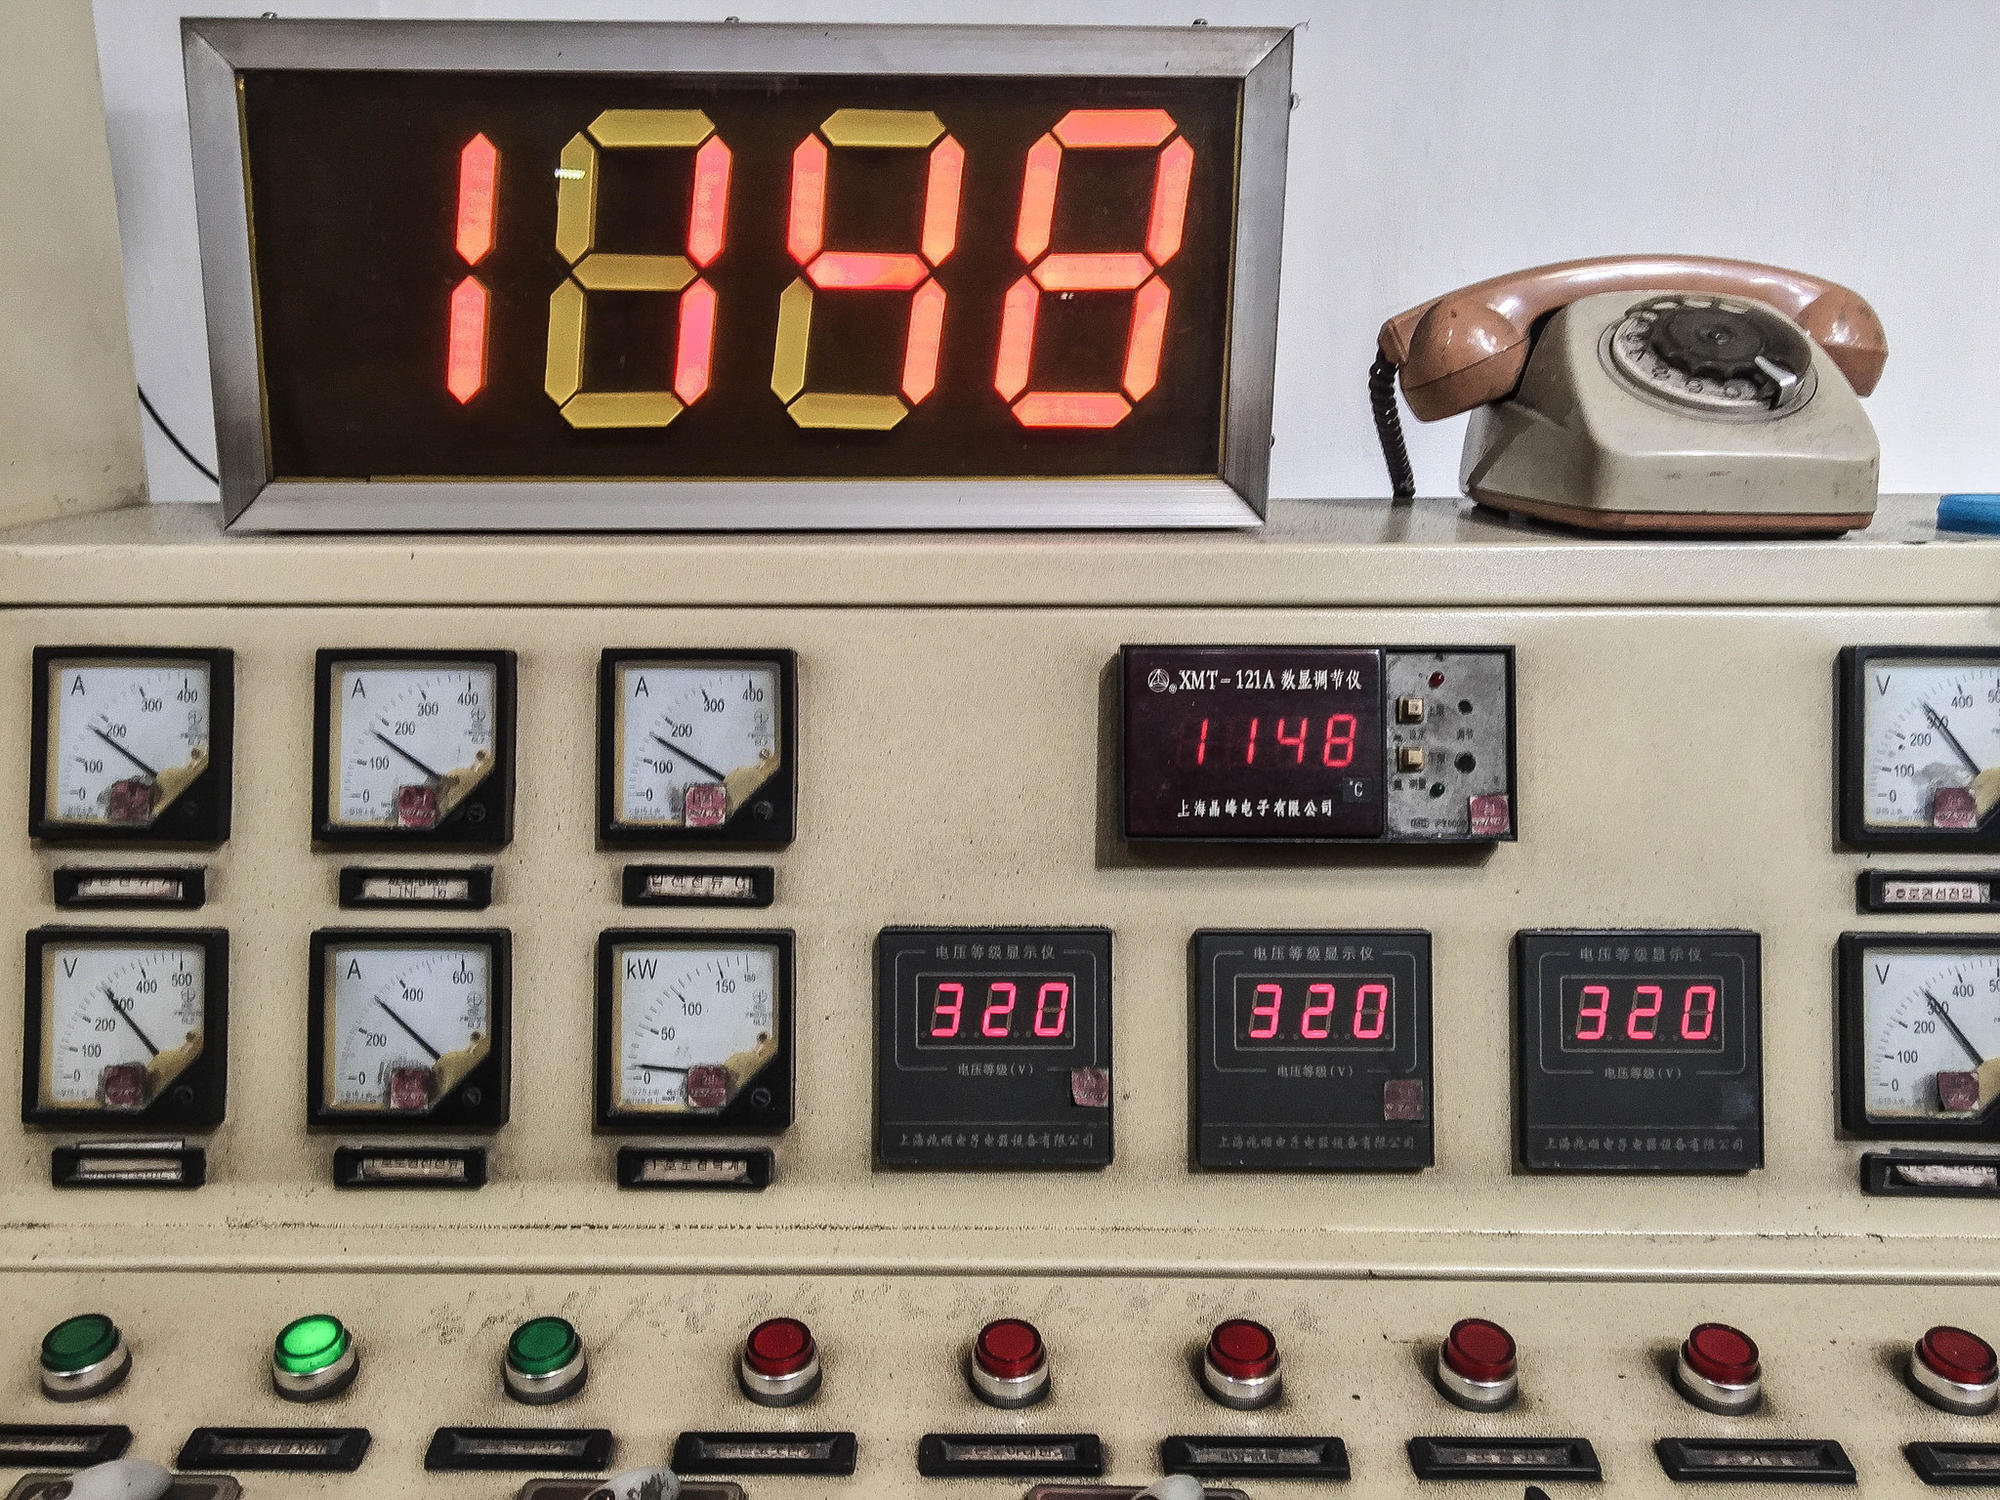 A control panel on a machine inside the factory.